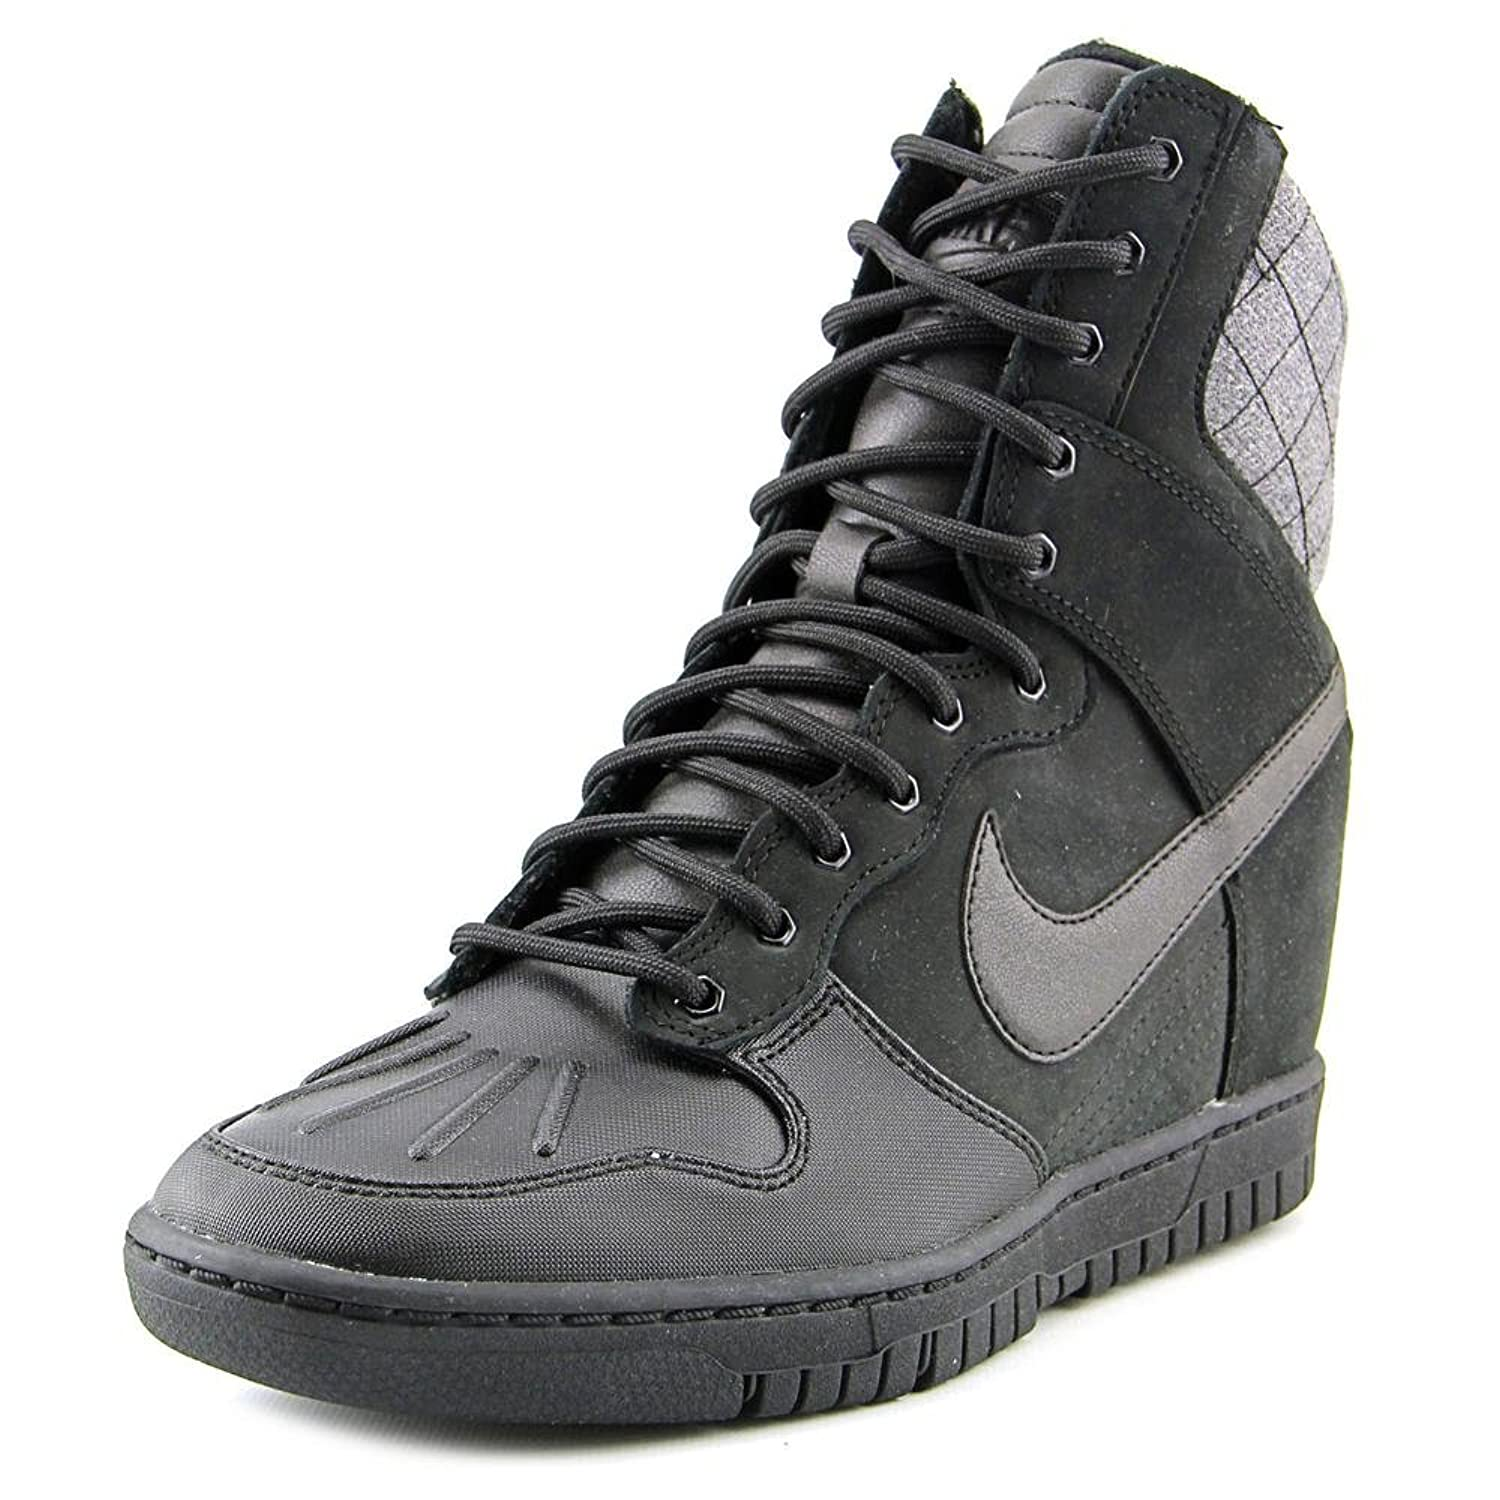 super popular 5ec6d 51119 Amazon.com: Nike Dunk Sky Hi SNKRBT 2.0 Women US 8.5 Green Sneakers ...